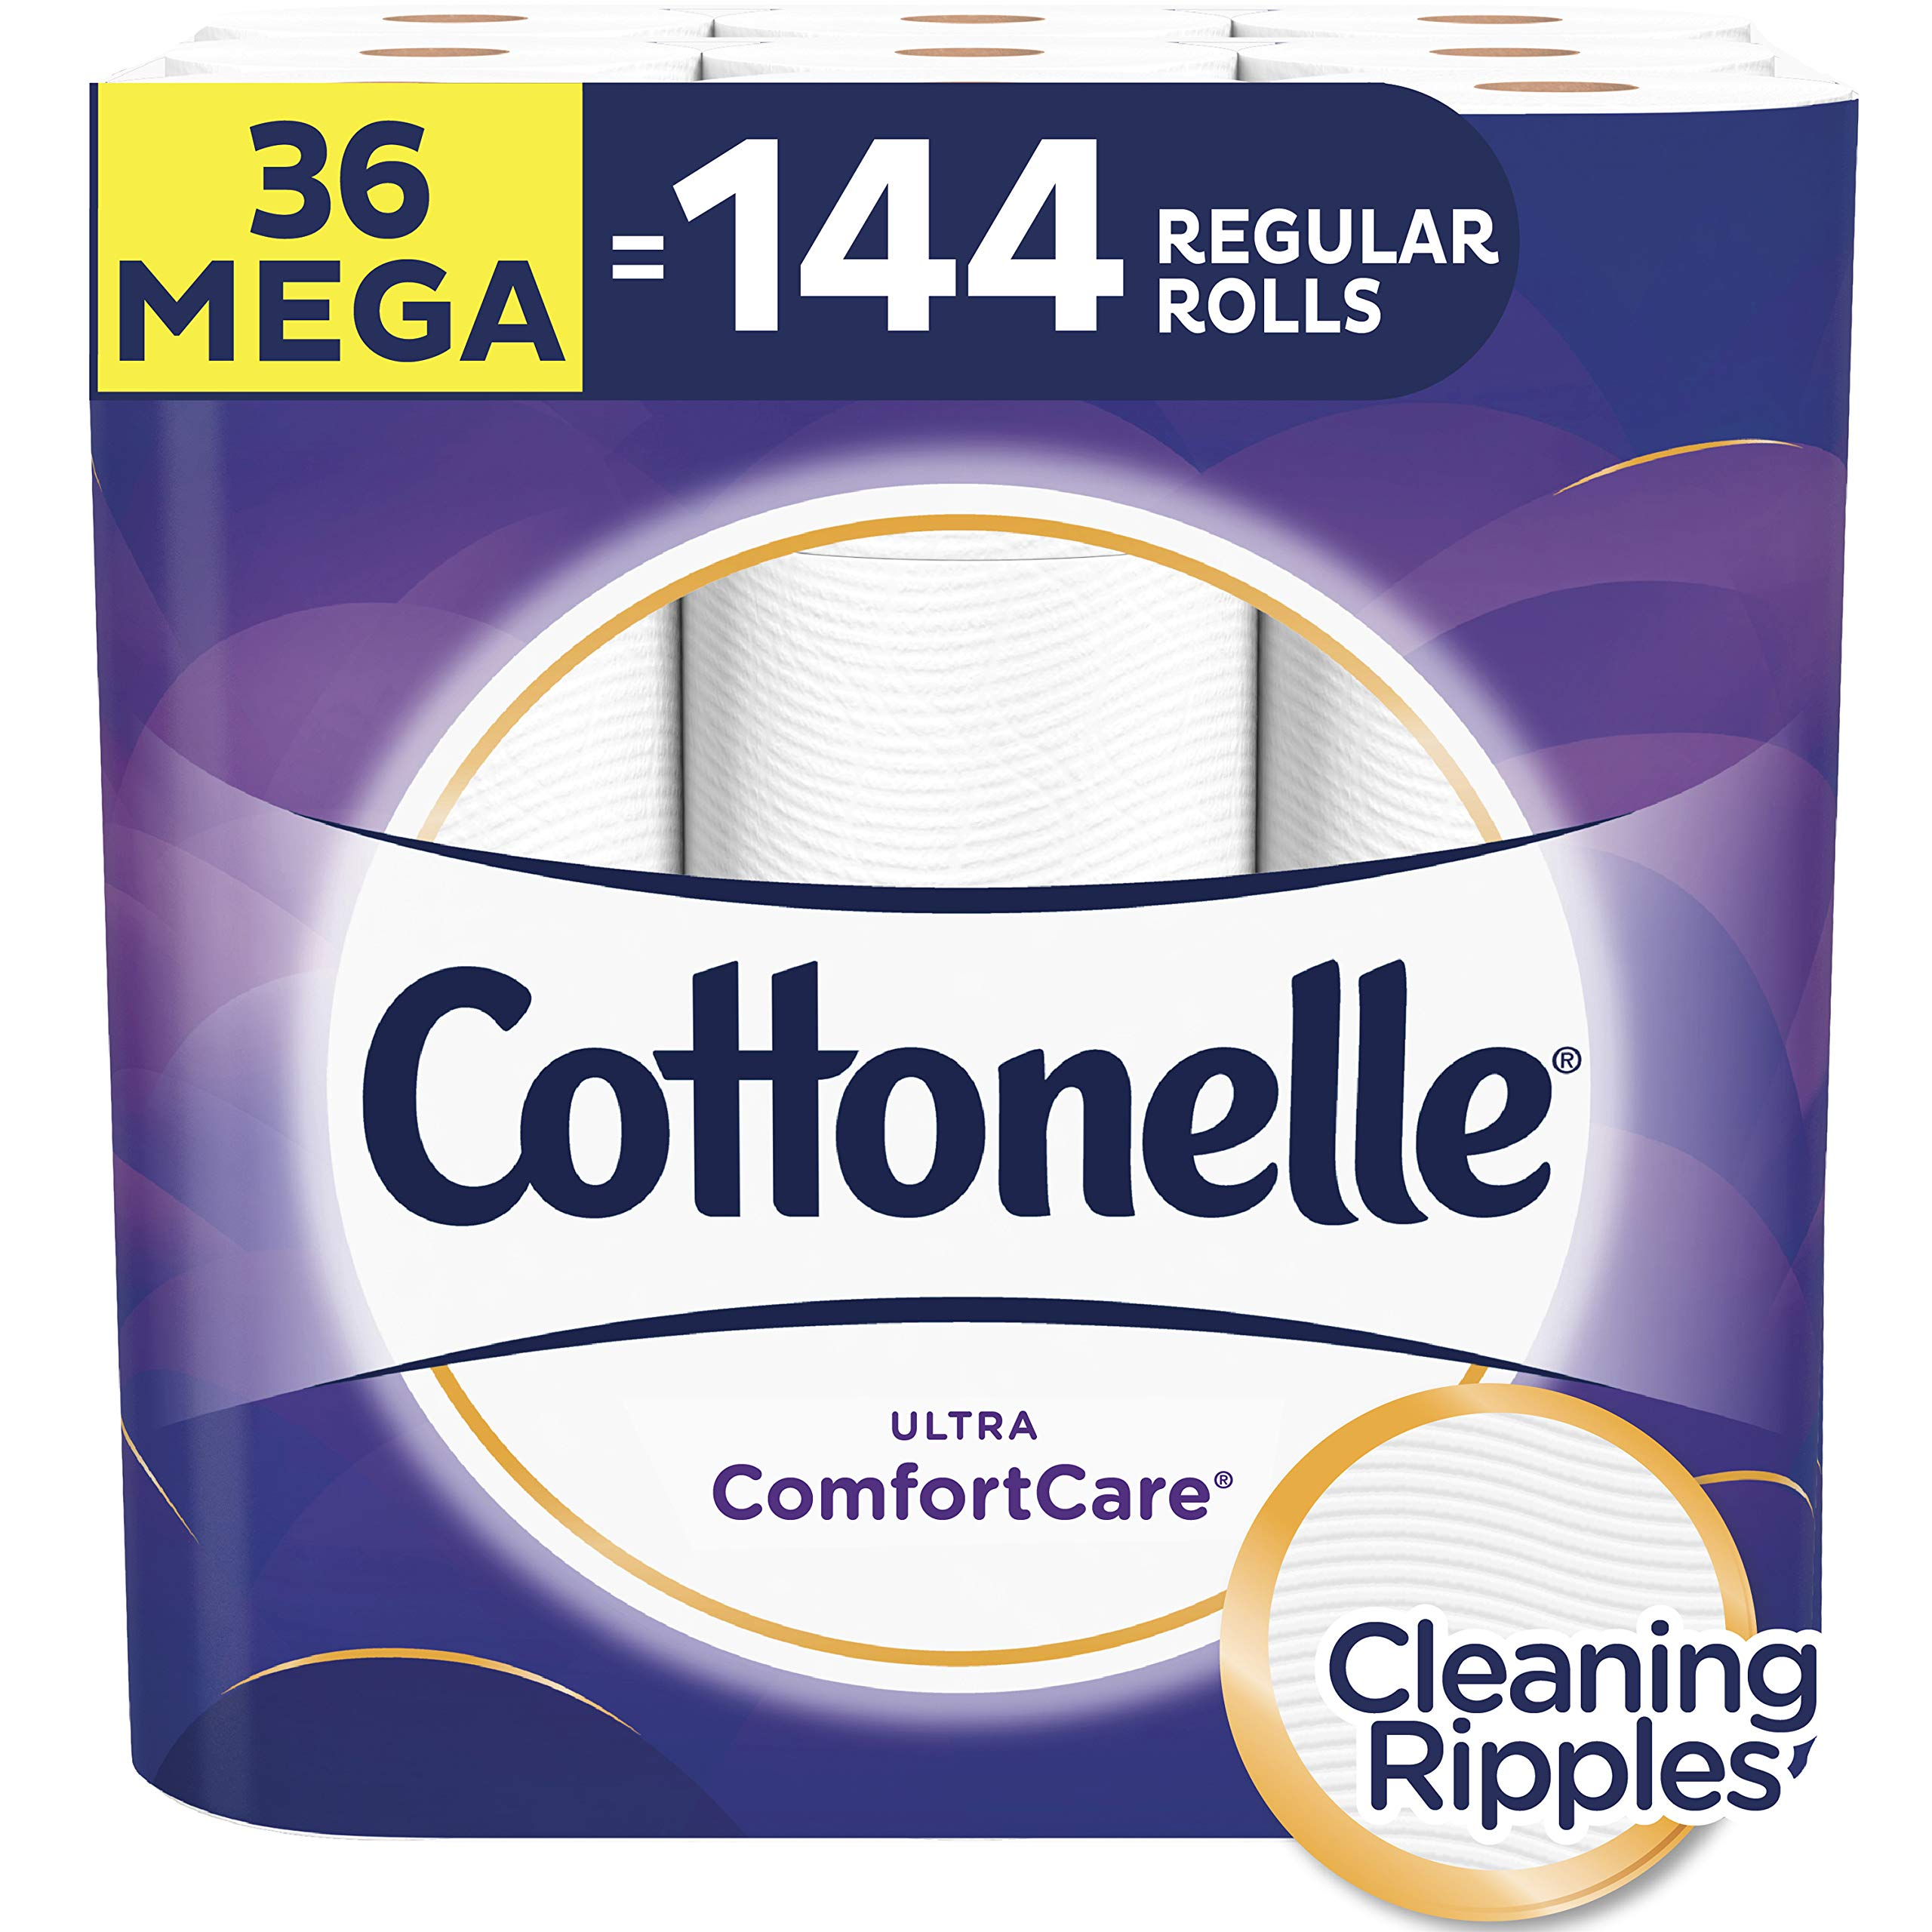 Cottonelle Ultra ComfortCare Toilet Paper, Soft Biodegradable Bath Tissue, Septic-Safe, 36 Mega Rolls (Packaging May Vary) by Cottonelle